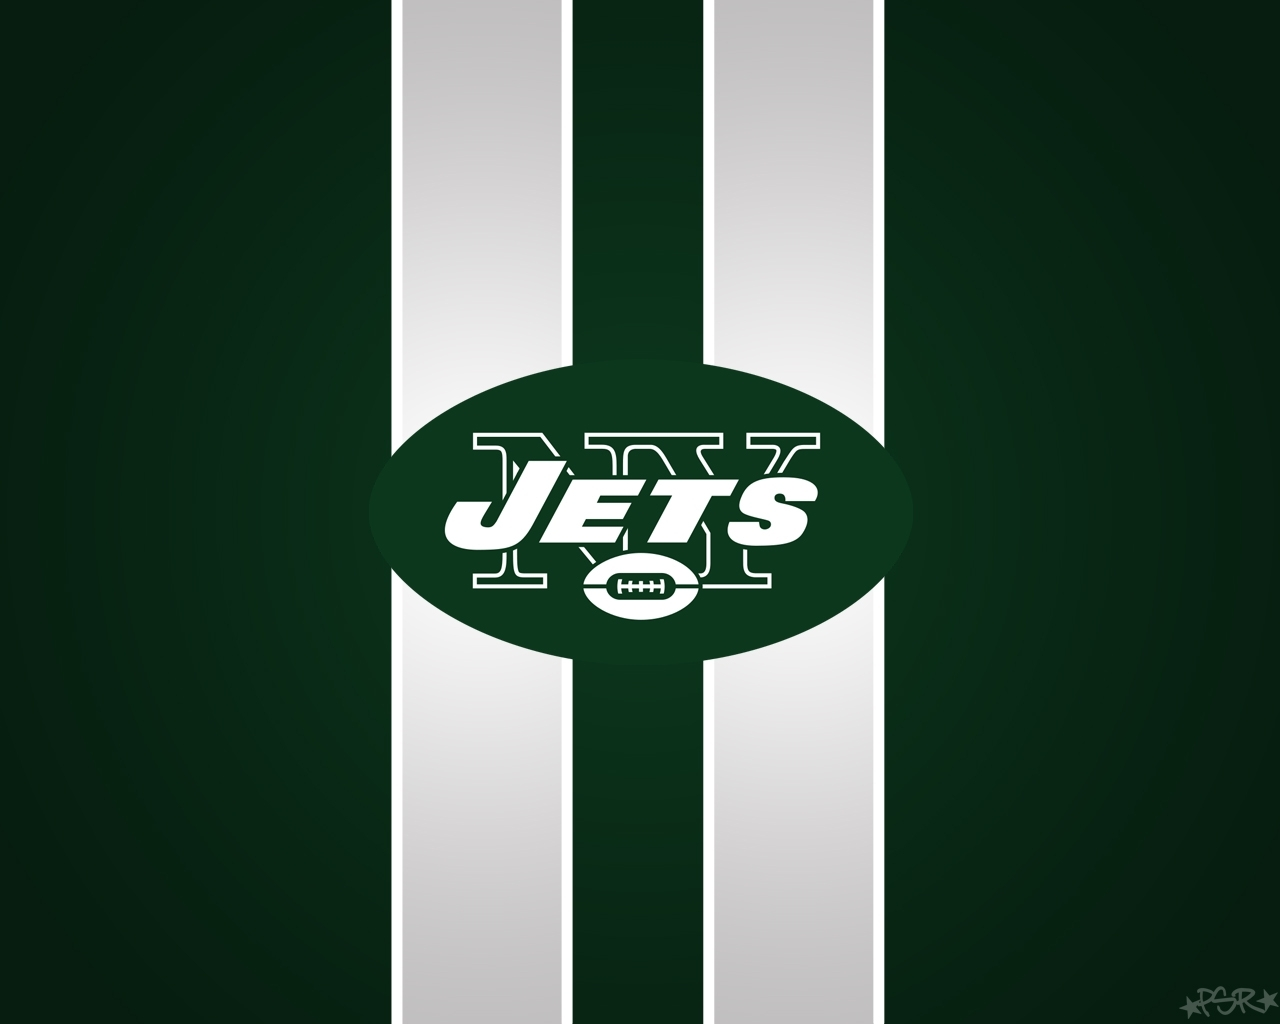 new york jets wallpaper and background image | 1280x1024 | id:149097